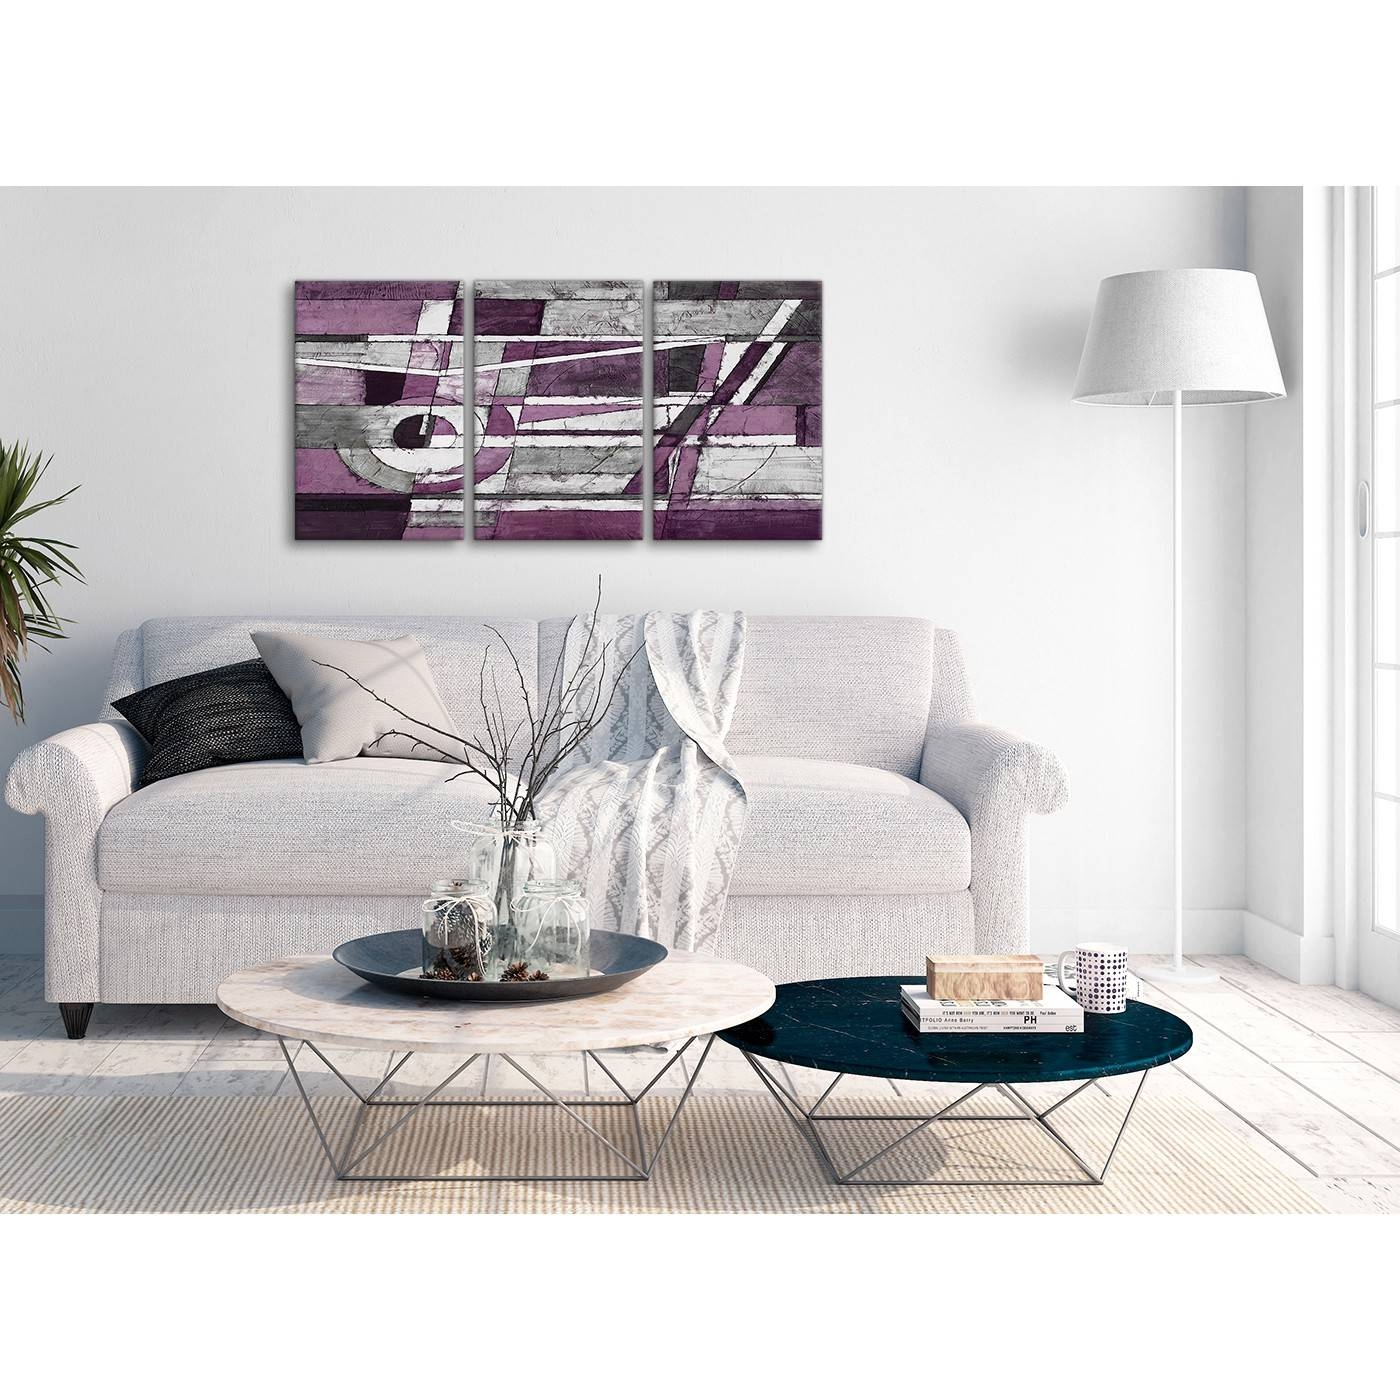 3 Panel Aubergine Grey White Painting Dining Room Canvas Wall Art In Most  Recent Aubergine Wall